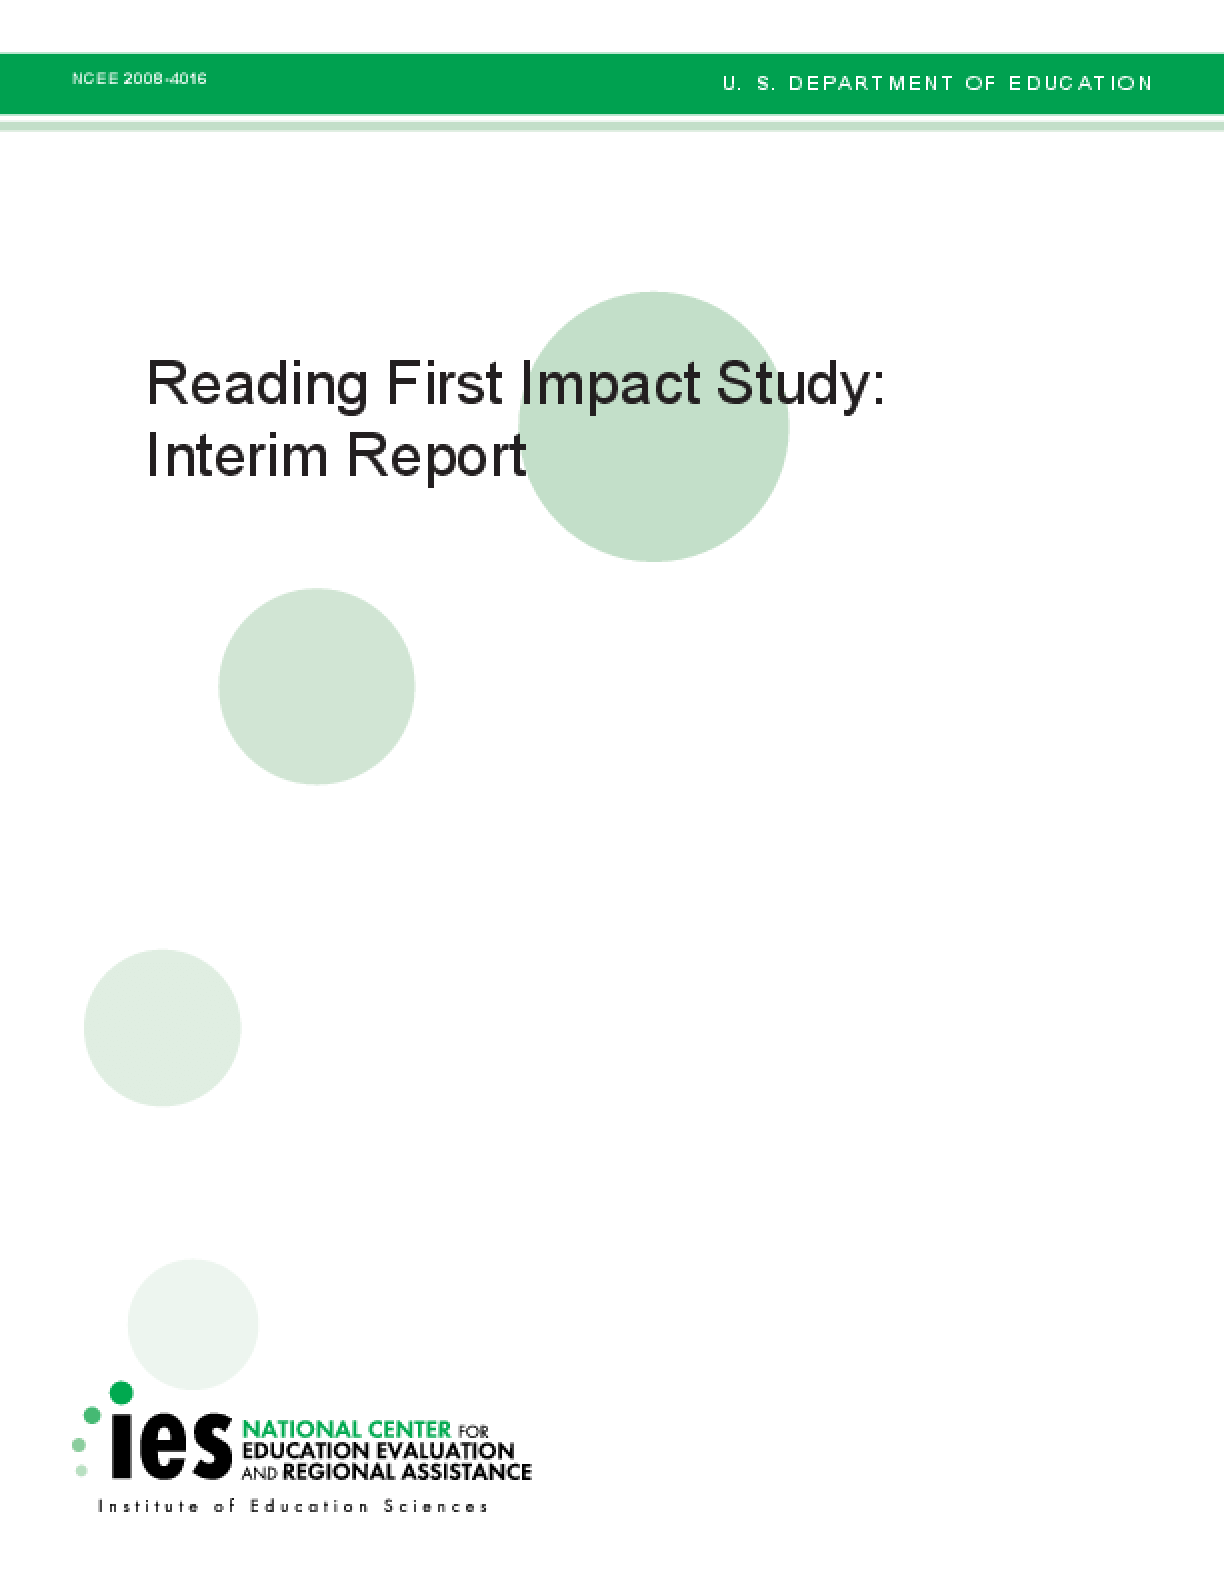 Reading First Impact Study: Interim Report